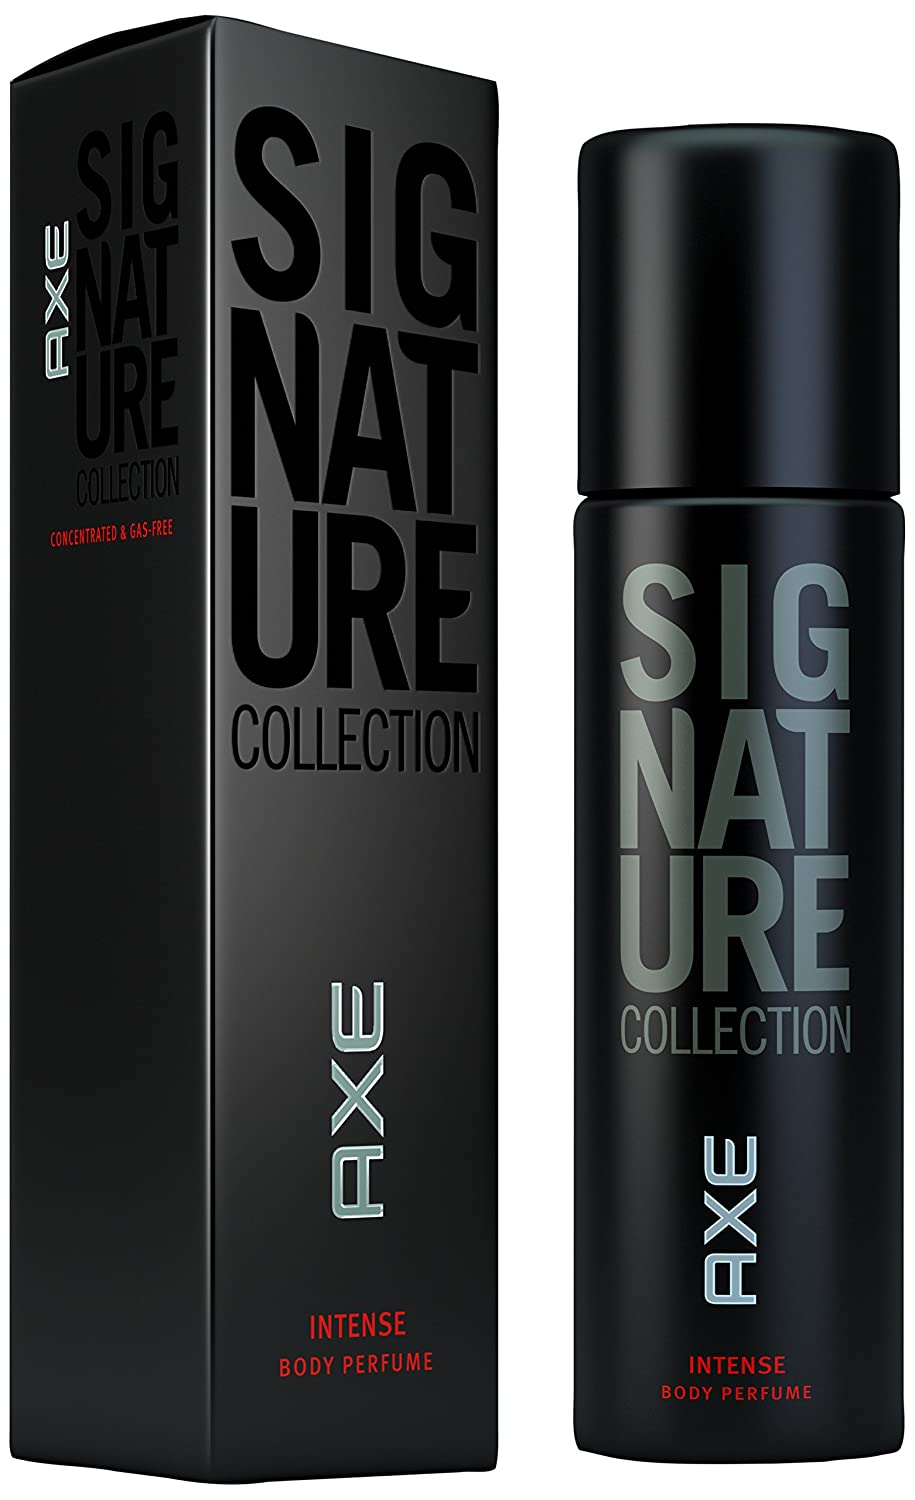 Axe Signature Collection Black Series For Men Deodorant INTENSE Body Spray Perfume Deo 122ml by AXE